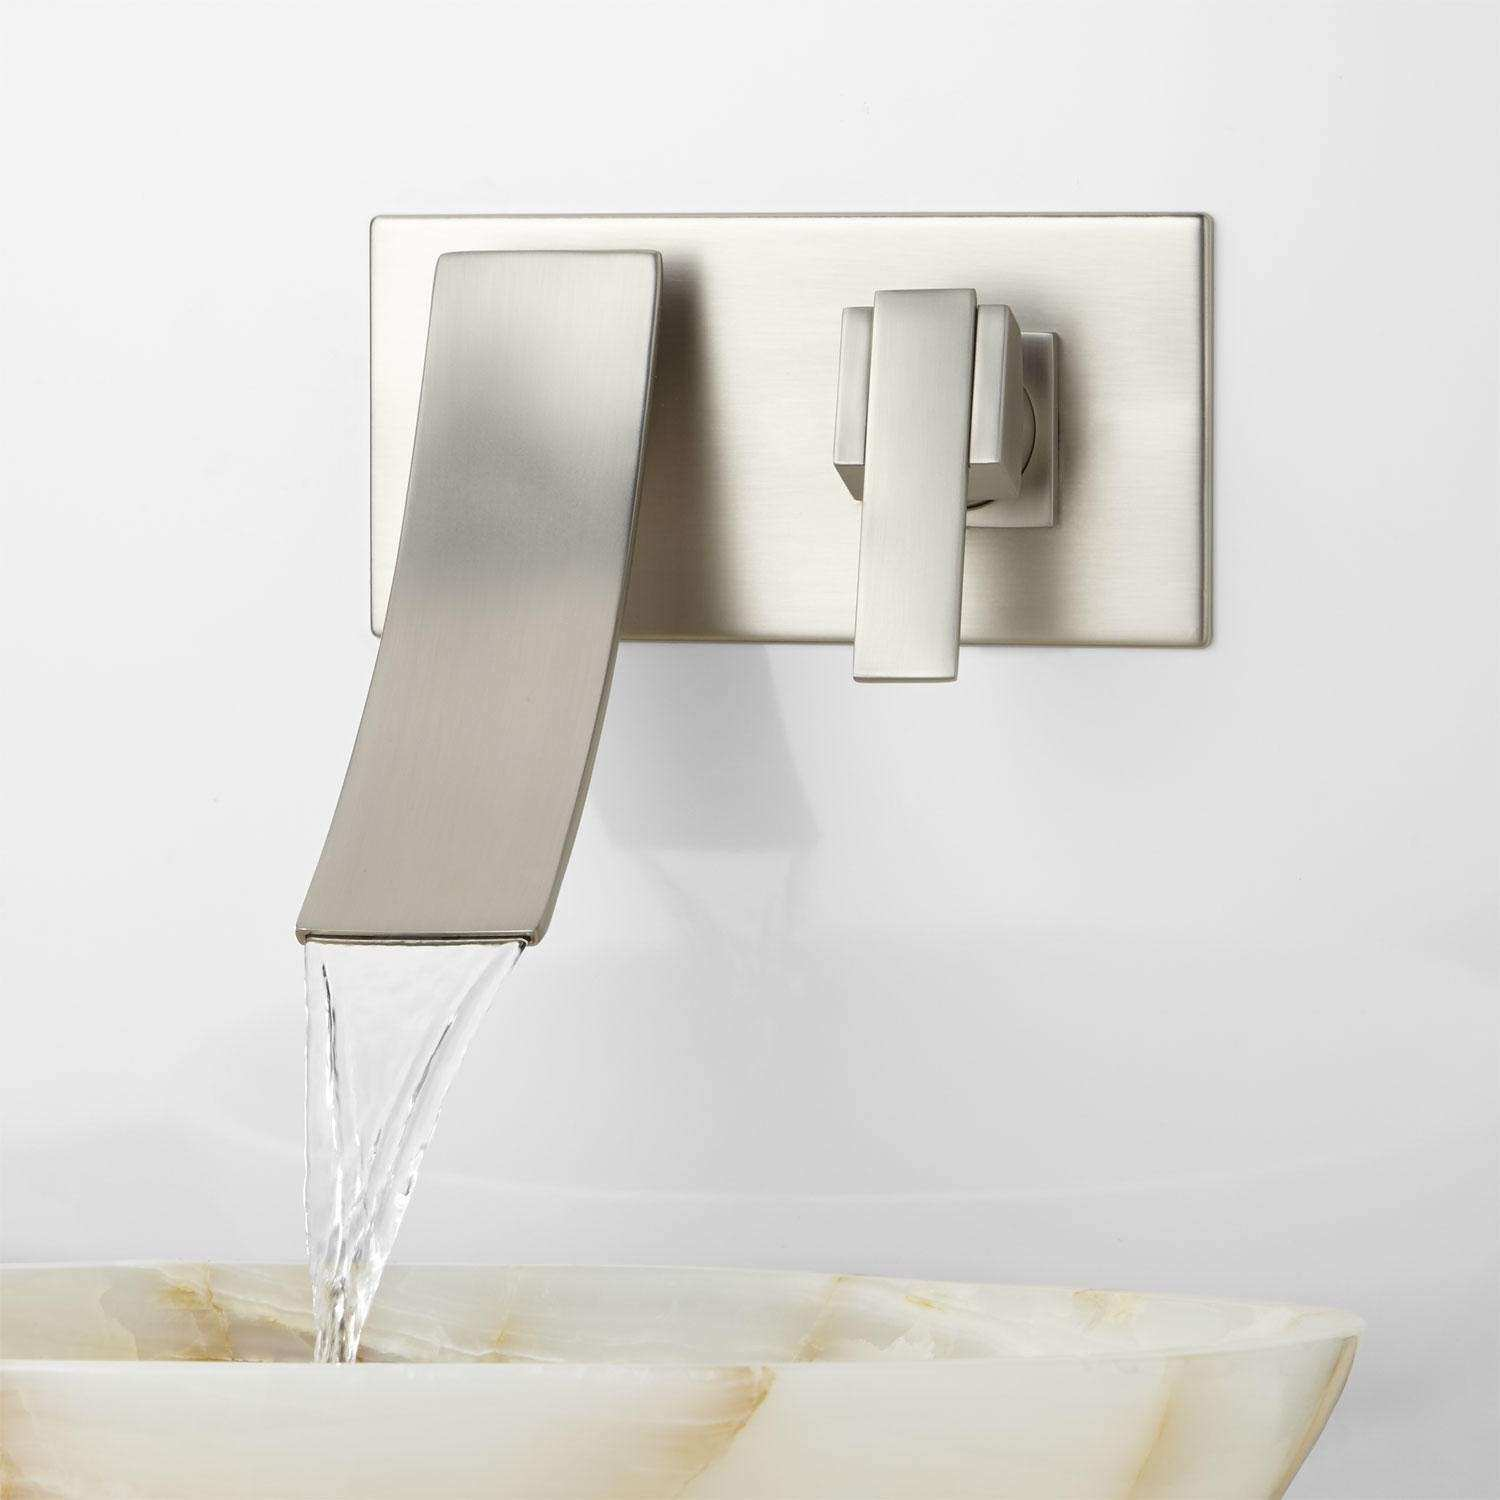 Wall Pictures for Bathroom Best Of Reston Wall Mount Waterfall Bathroom Faucet Bathroom